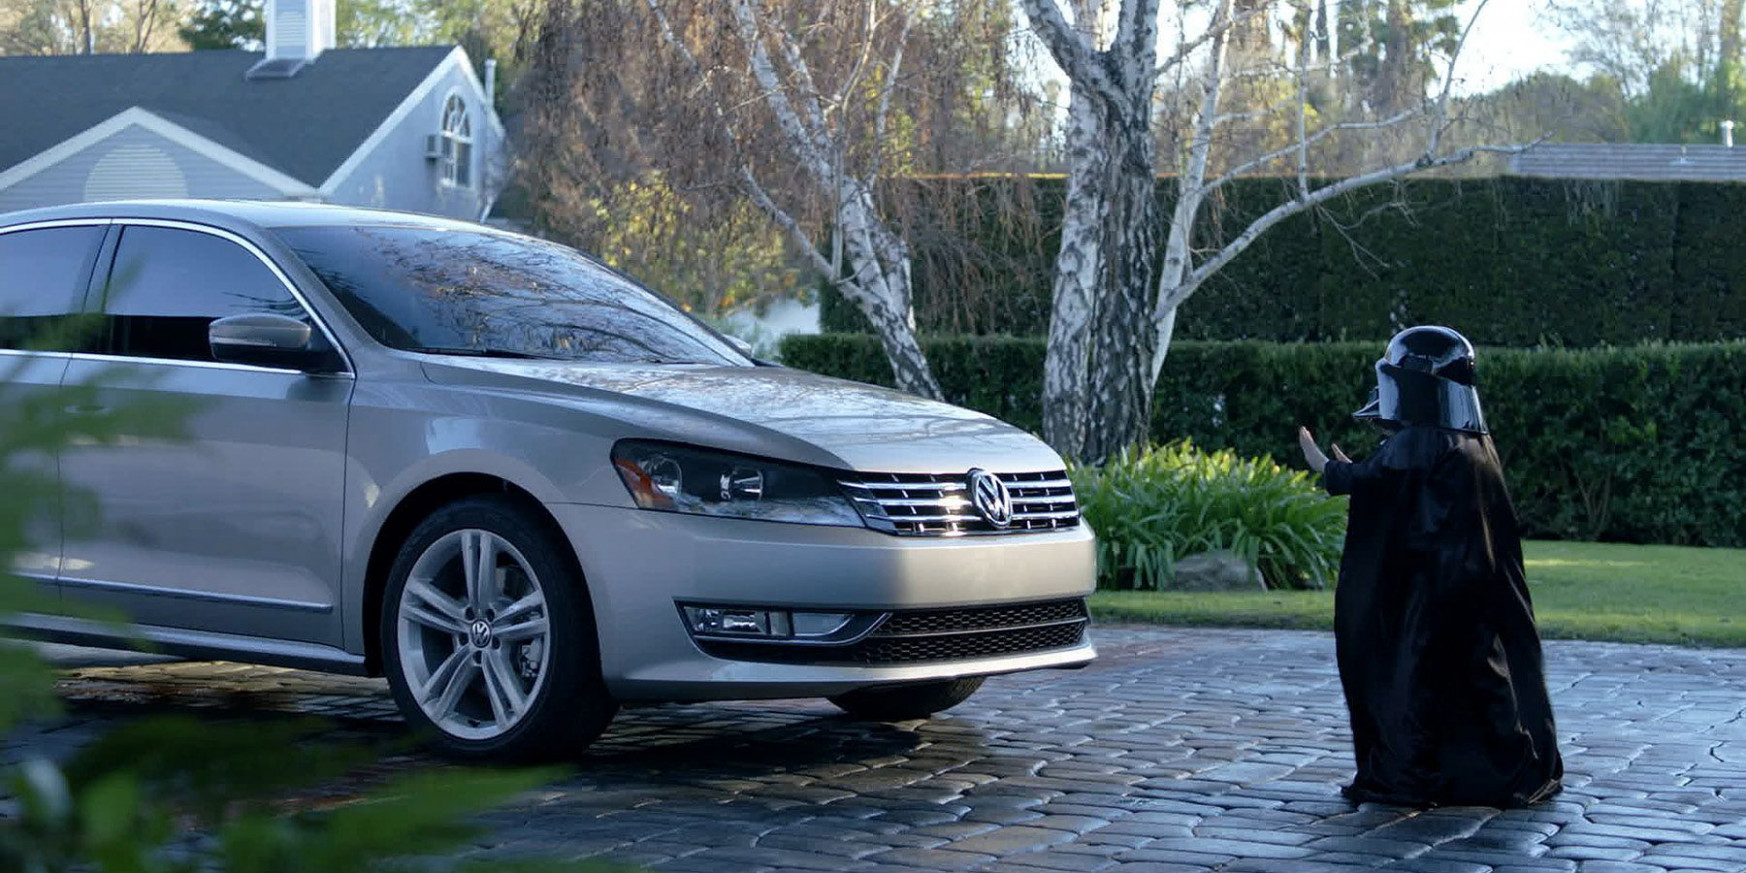 Greatest Super Bowl Car Commercials of All Time - volkswagen commercial actors 2020